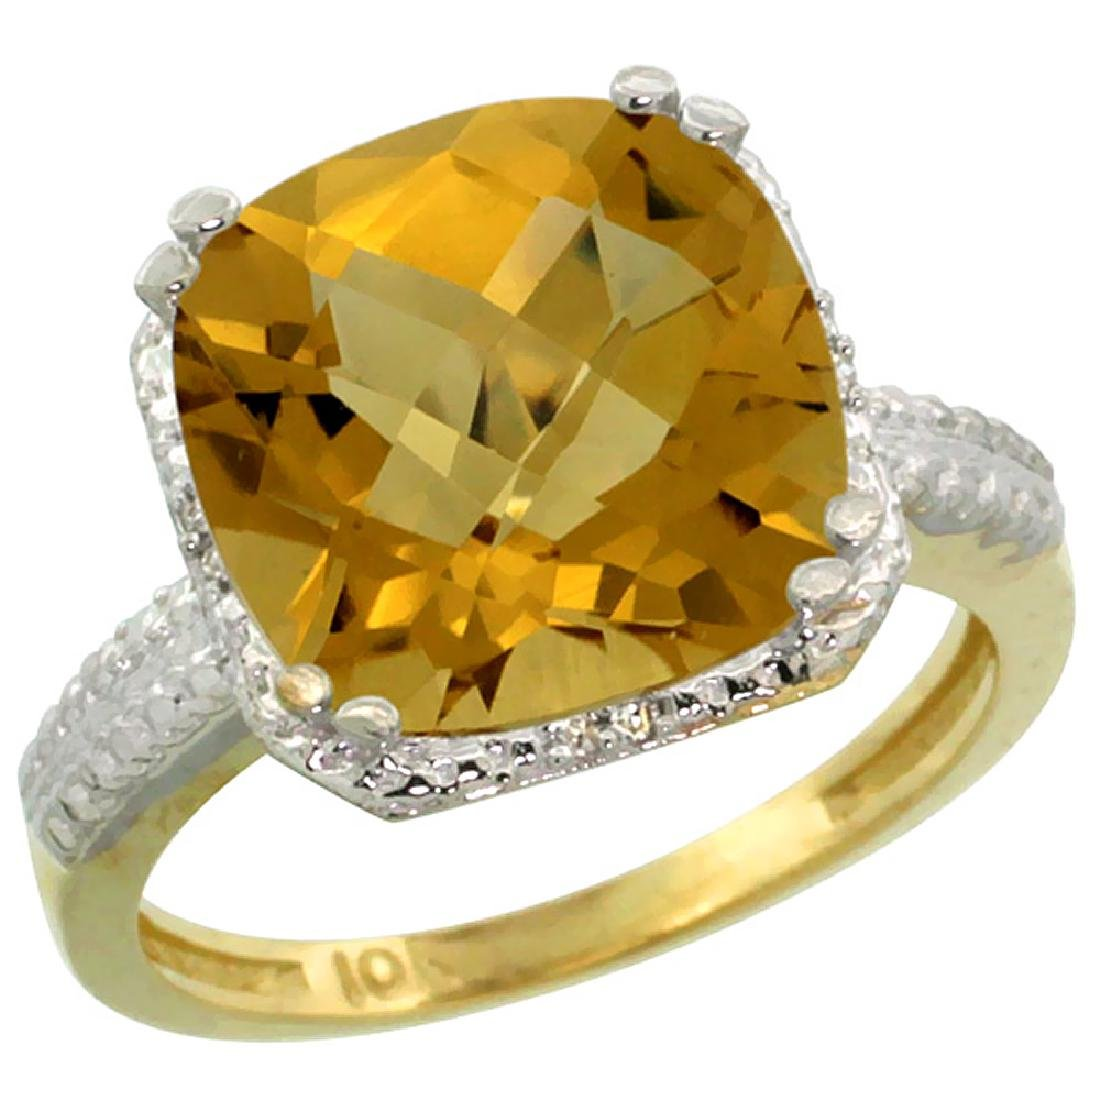 Natural 5.96 ctw Whisky-quartz & Diamond Engagement